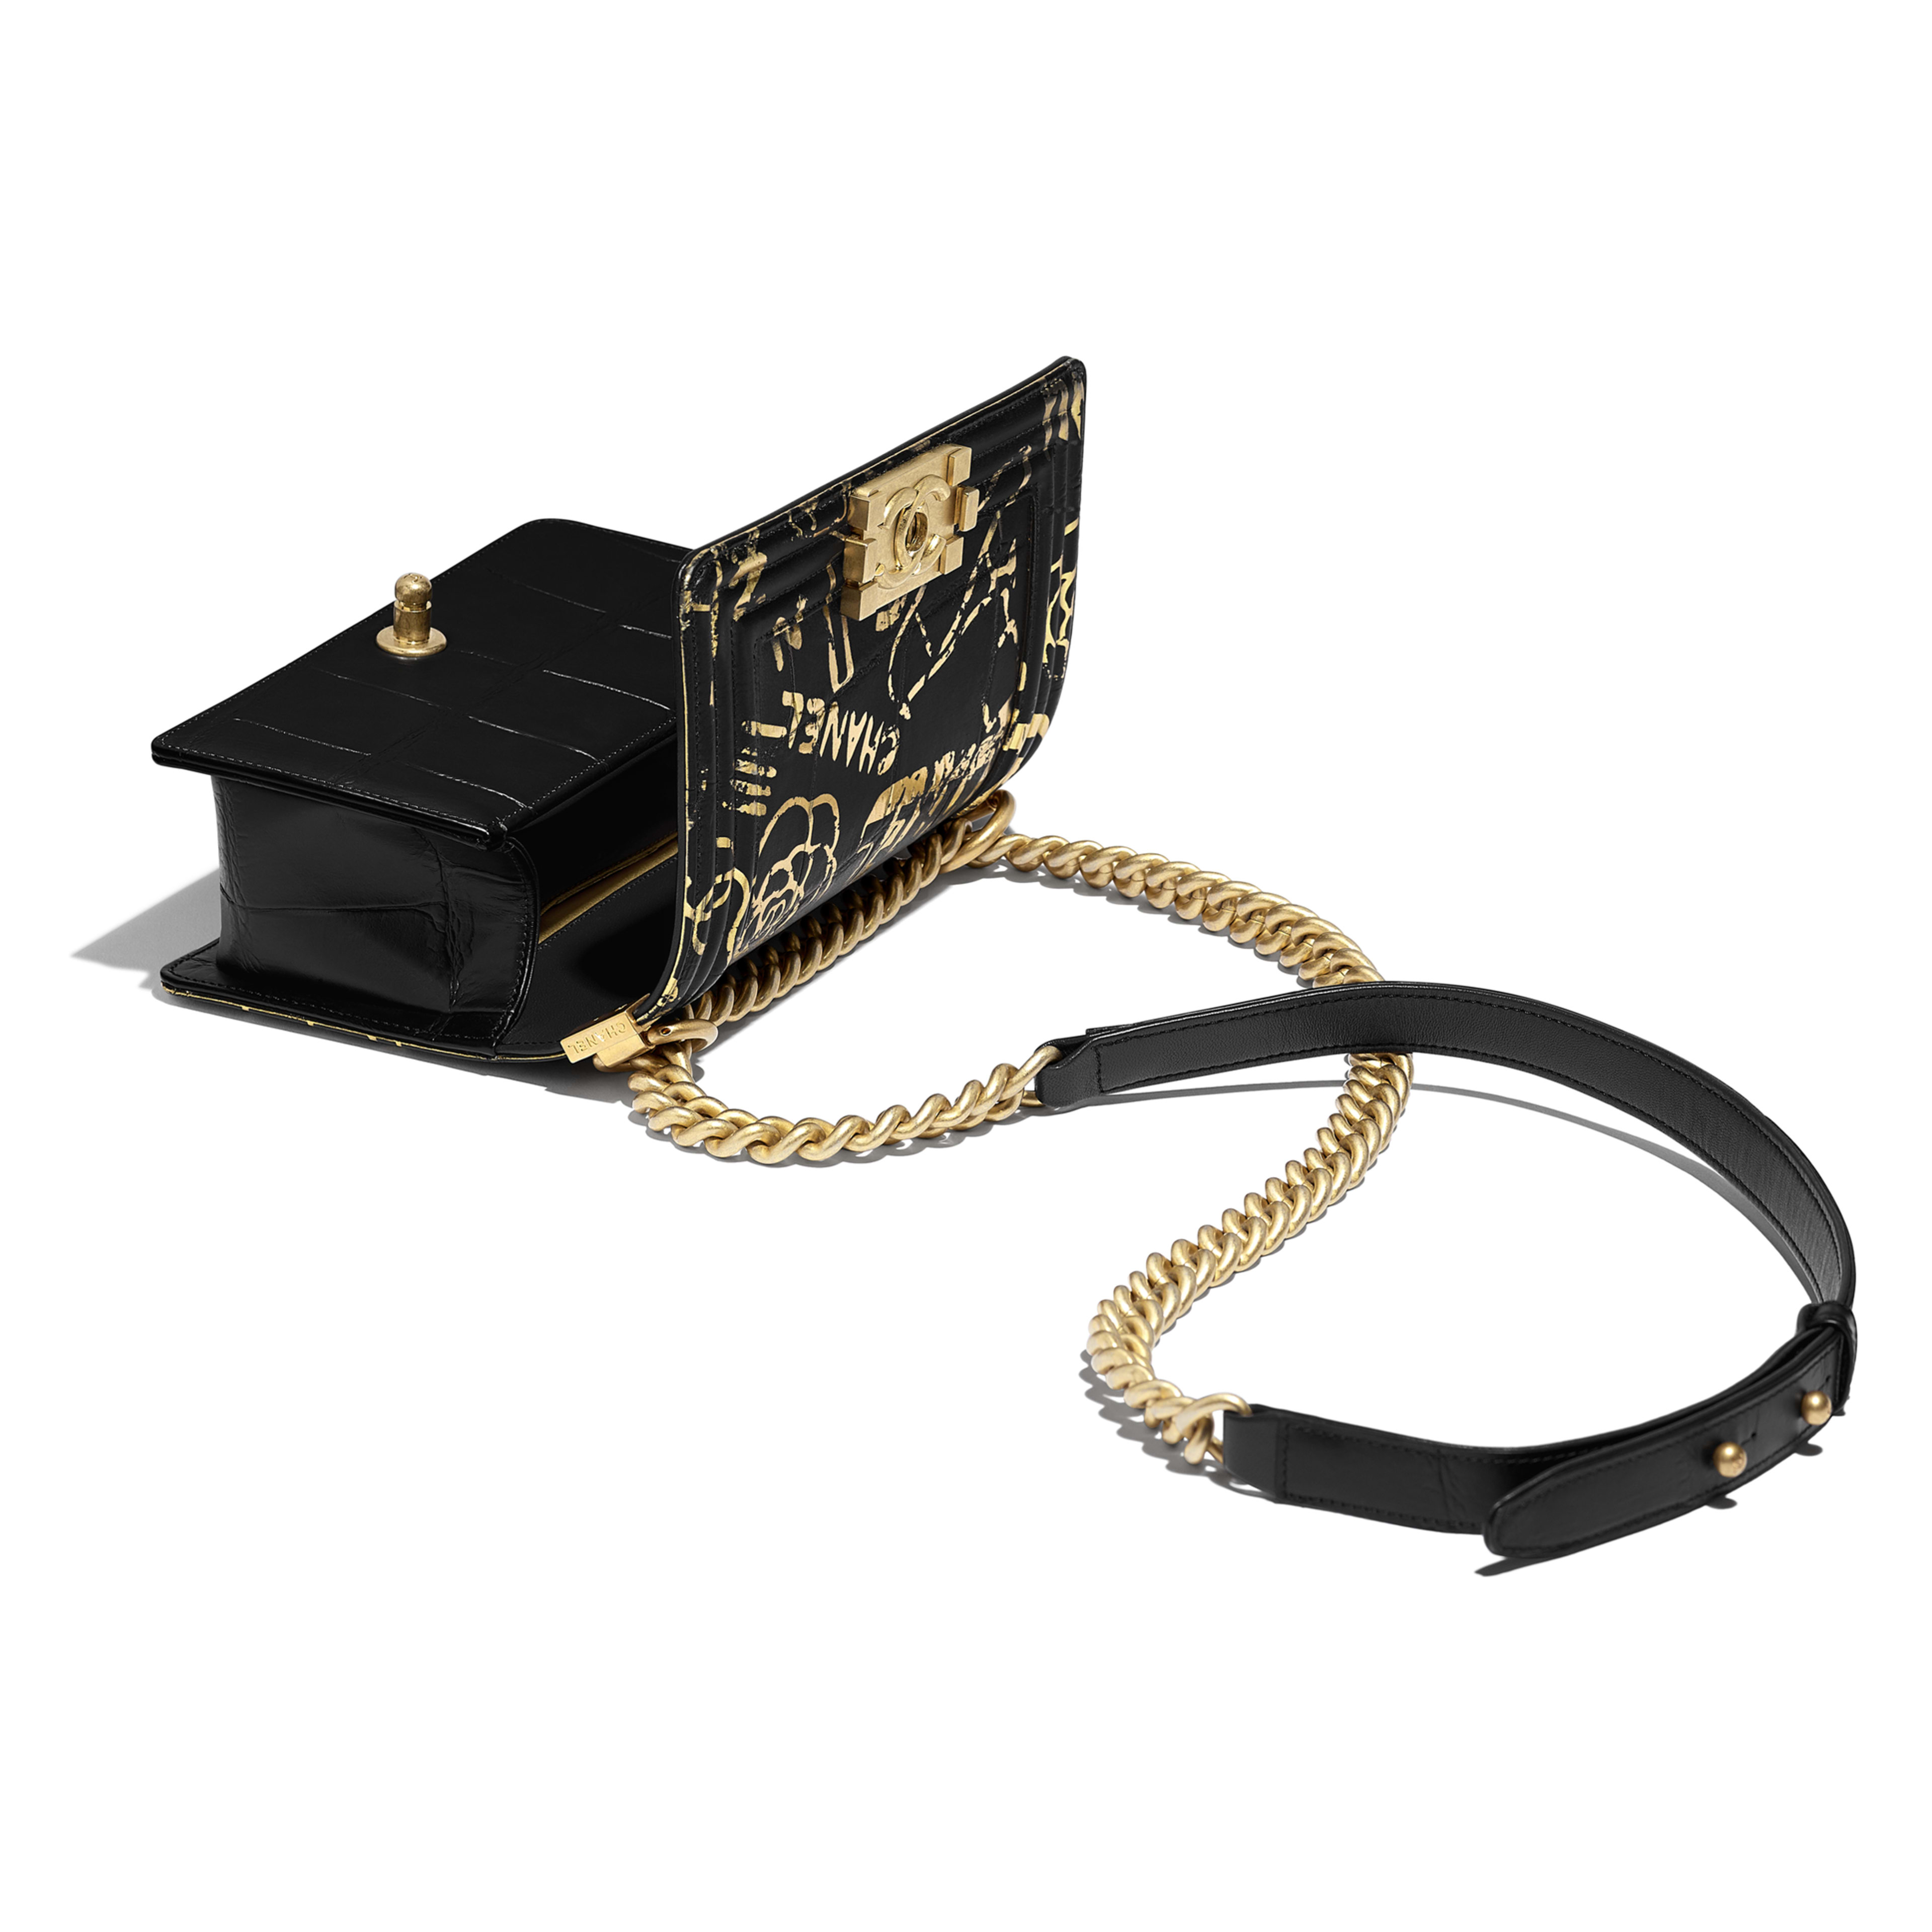 Small BOY CHANEL Handbag - Black & Gold - Crocodile Embossed Printed Leather & Gold-Tone Metal - Other view - see full sized version